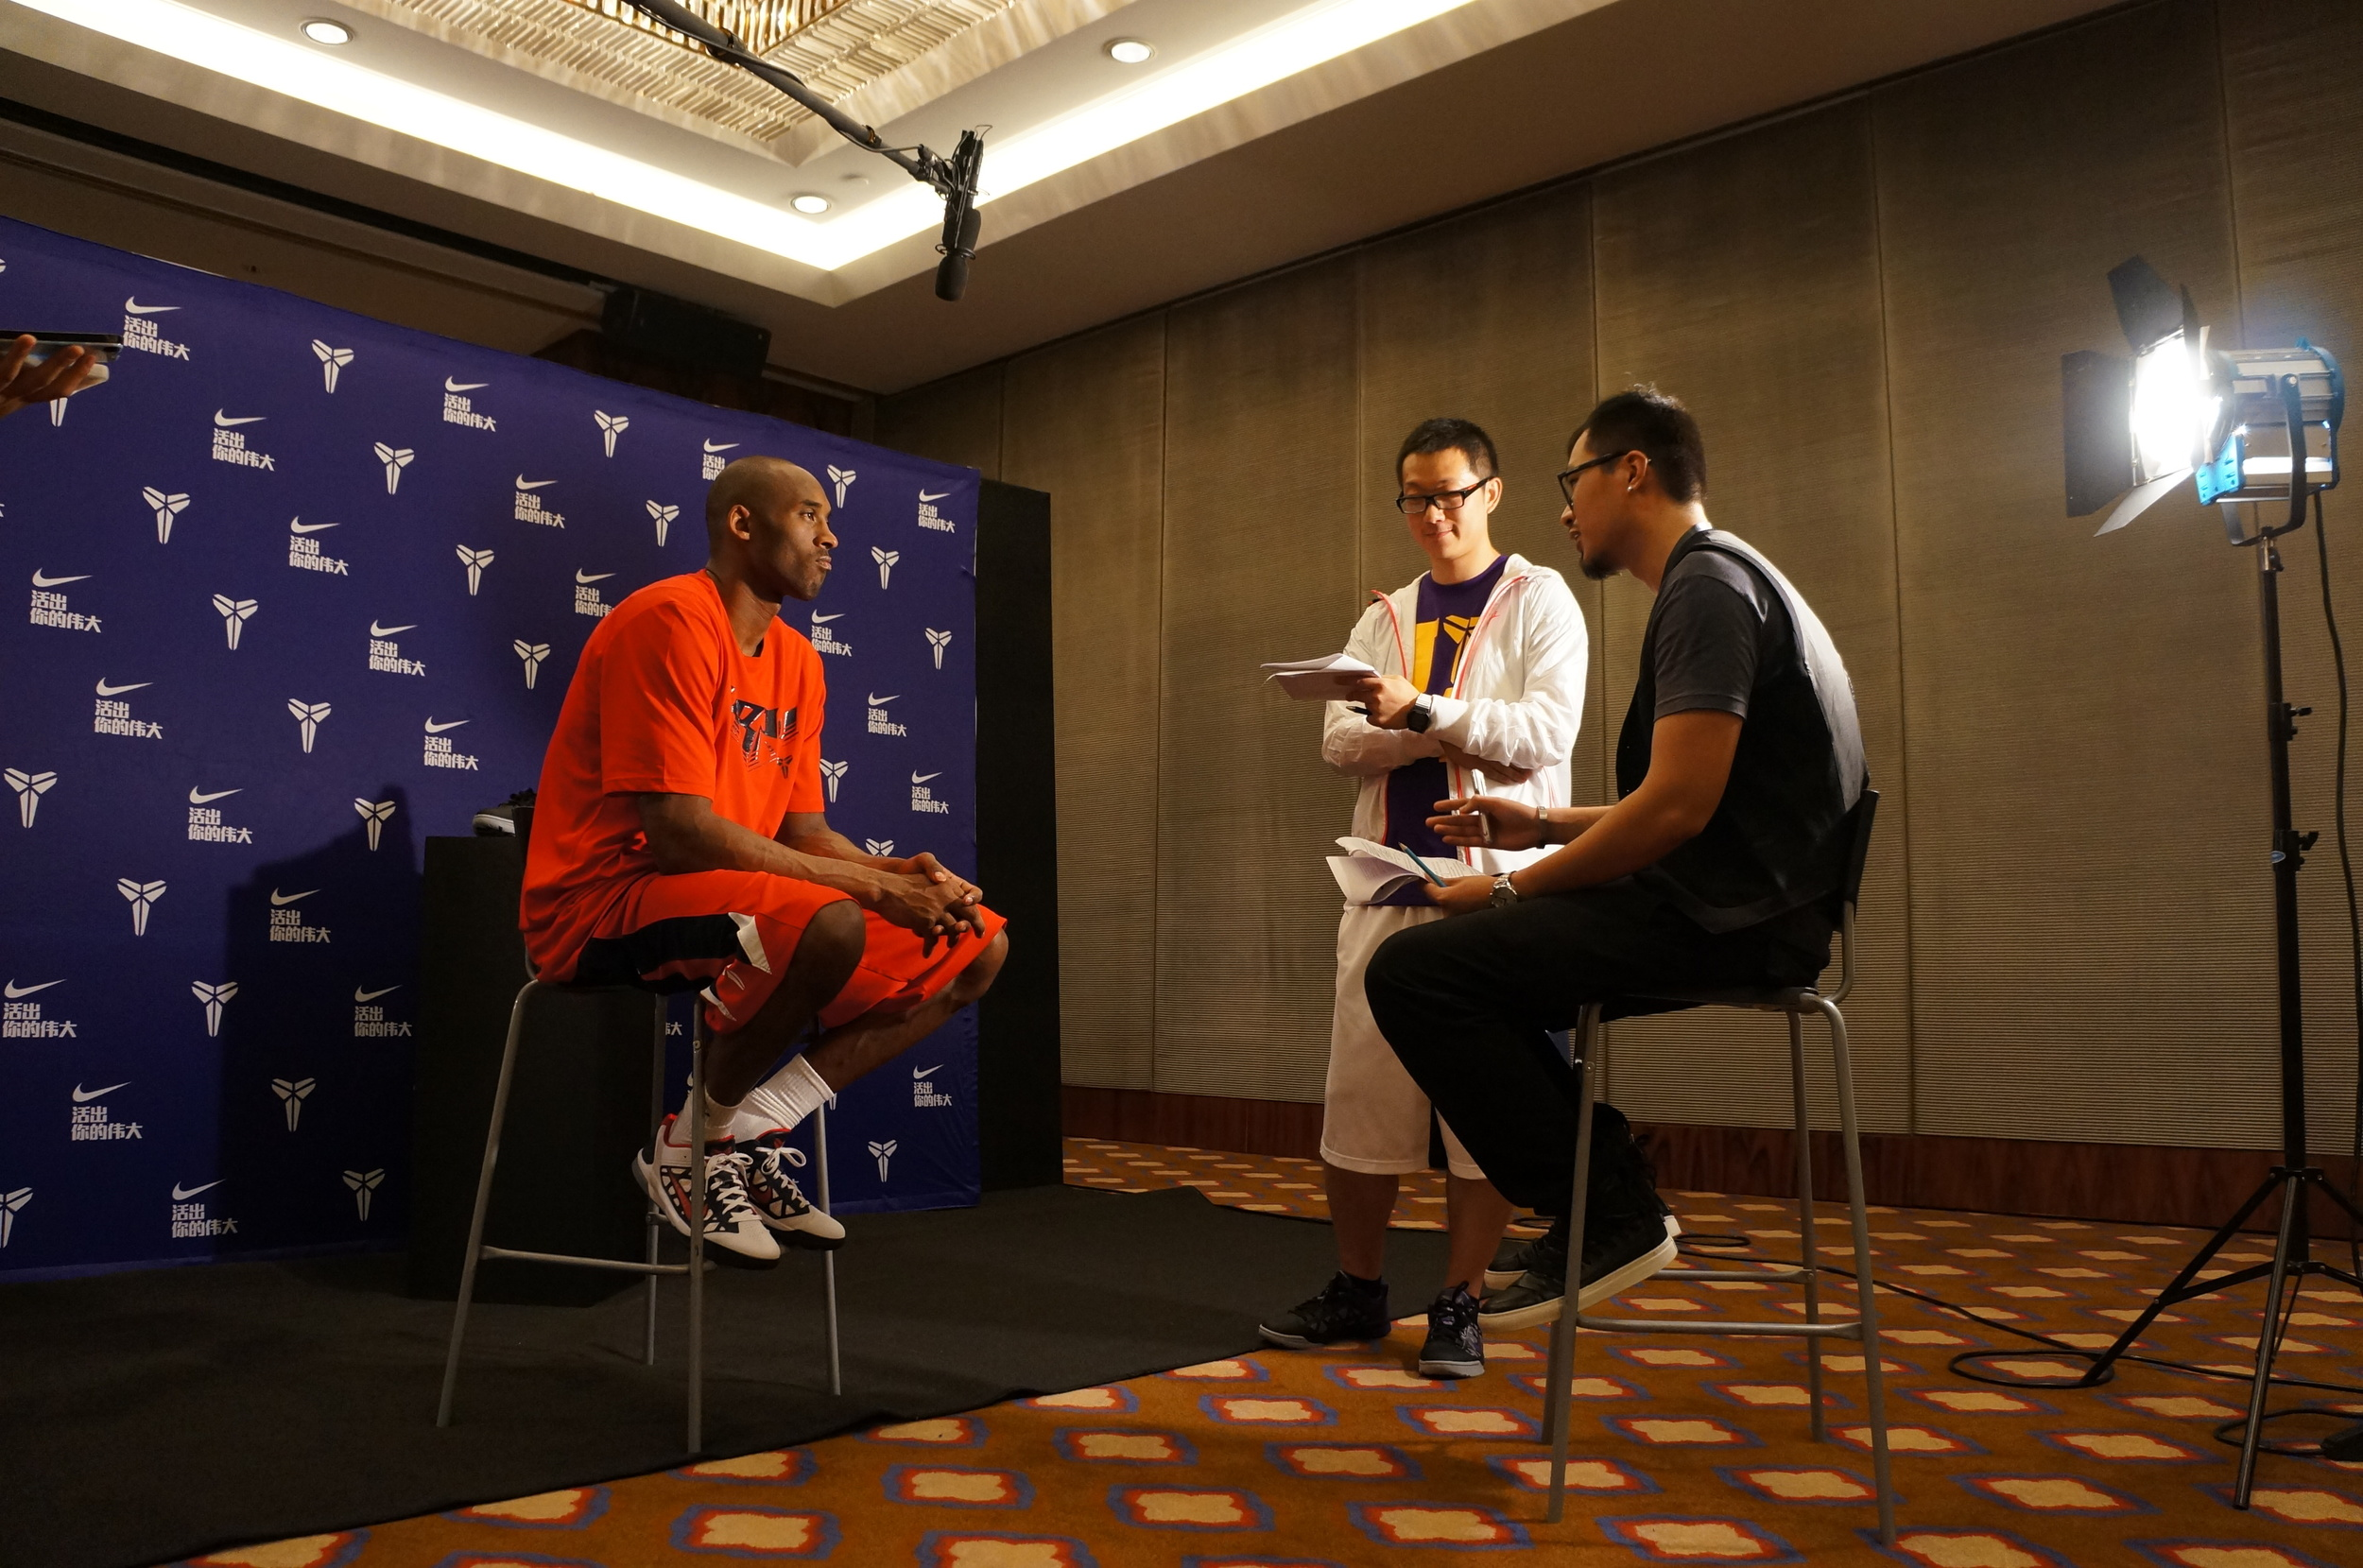 Company President Doing Interview with Kobe Bryant